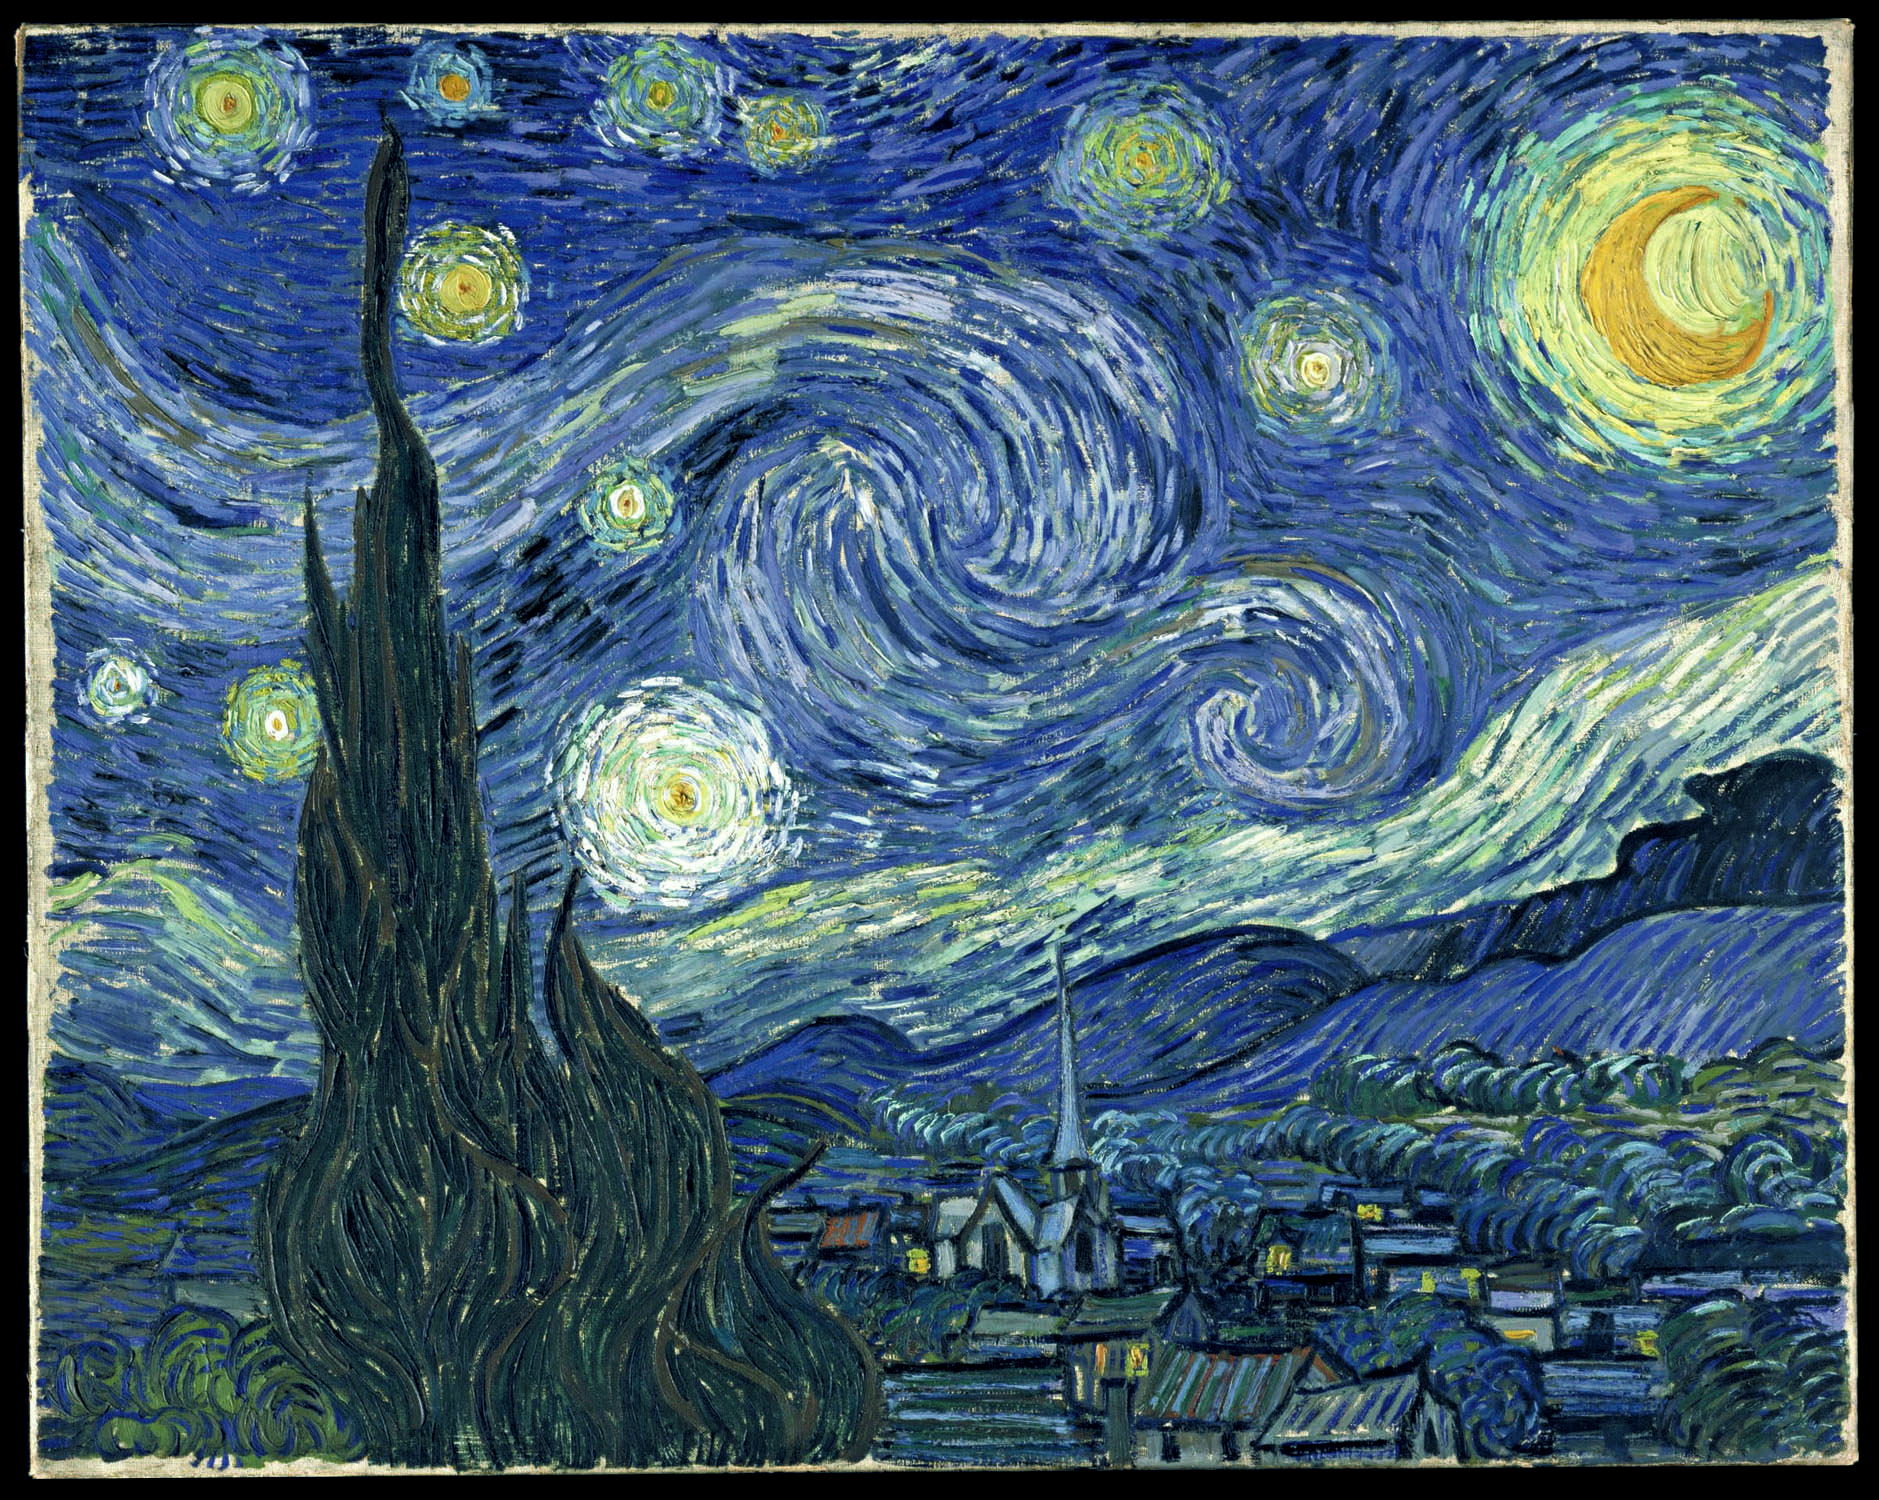 illustration of Van Gogh's Starry Night